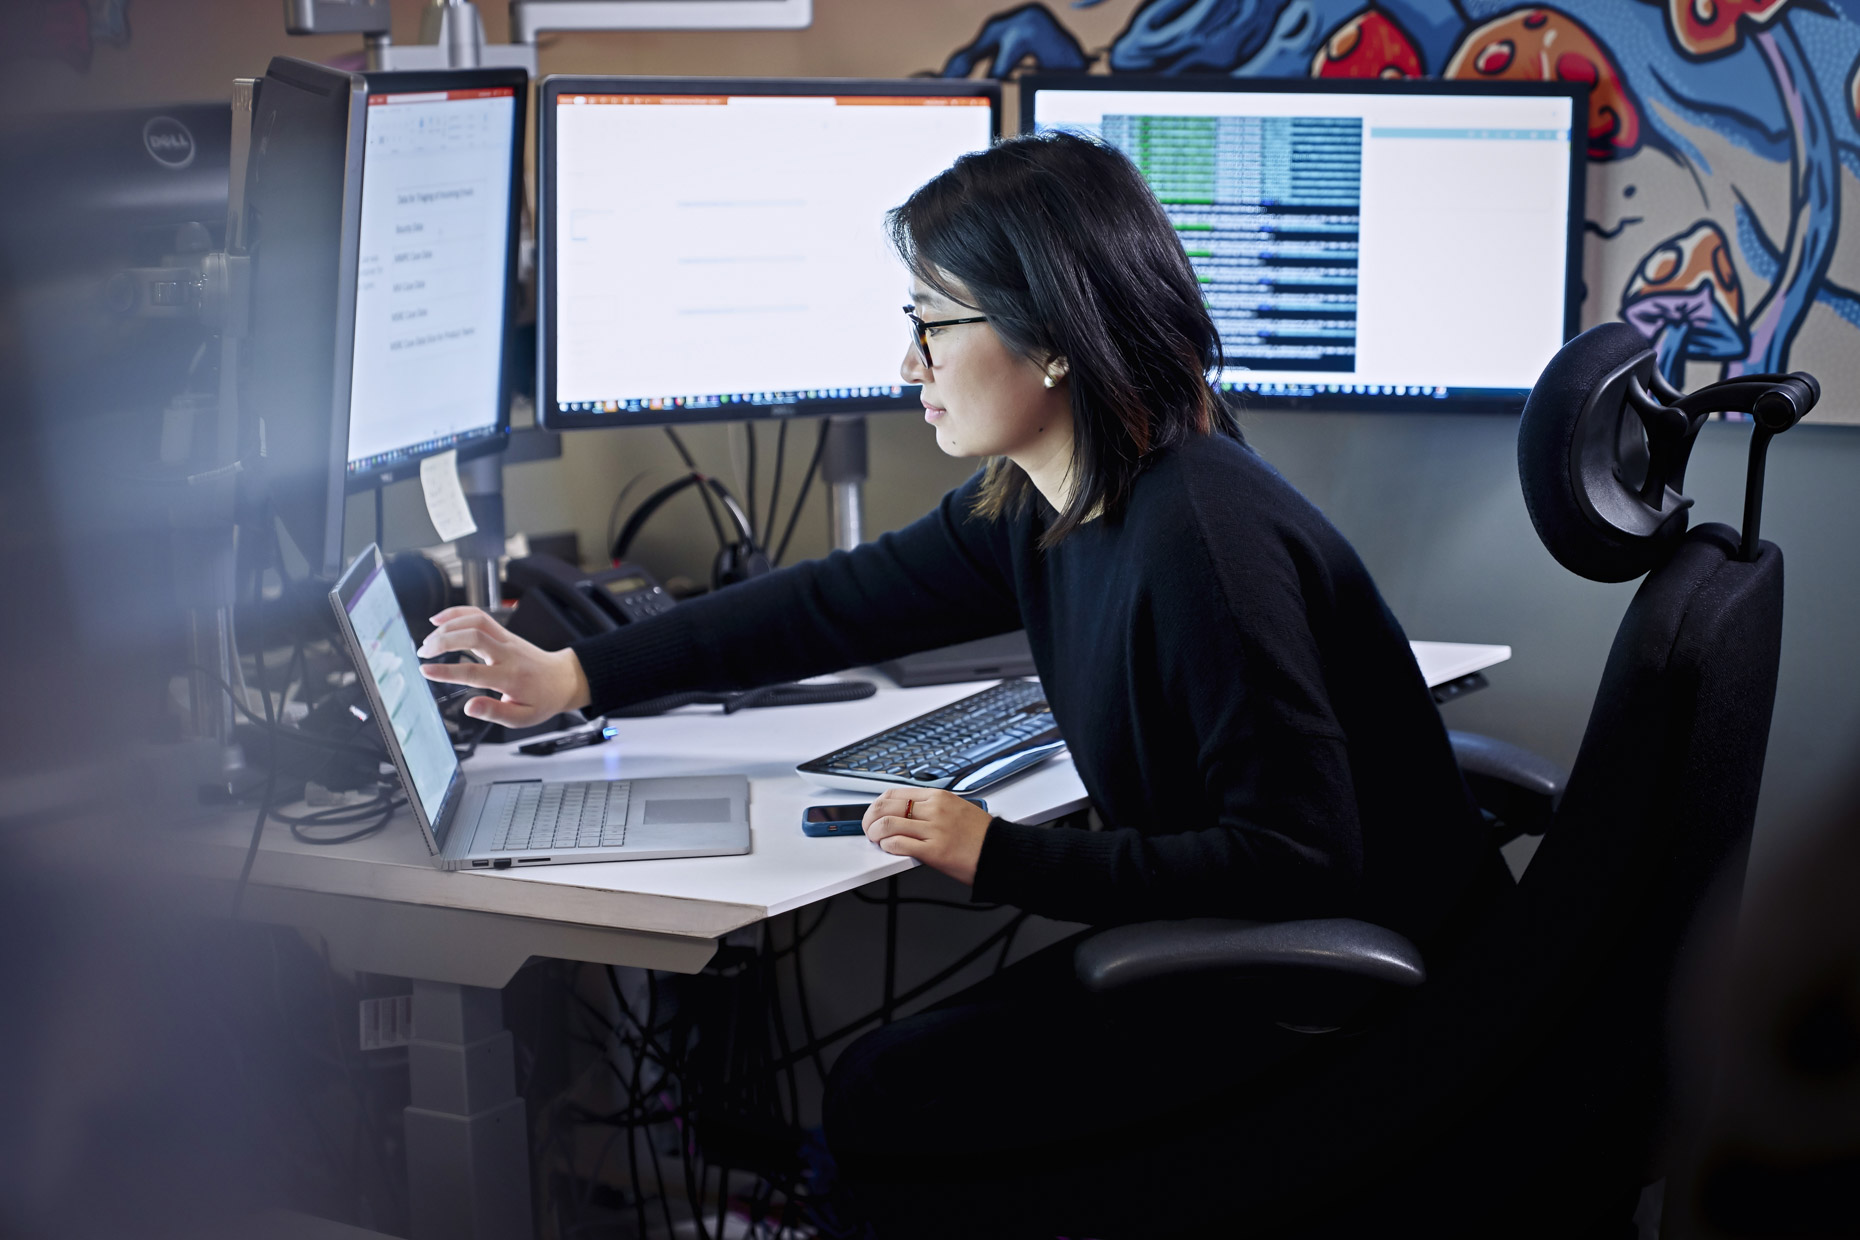 woman-working-touch-screen-laptop-five-monitors-microsoft-Inti-St-Clair-IS20190313_MS365_4384